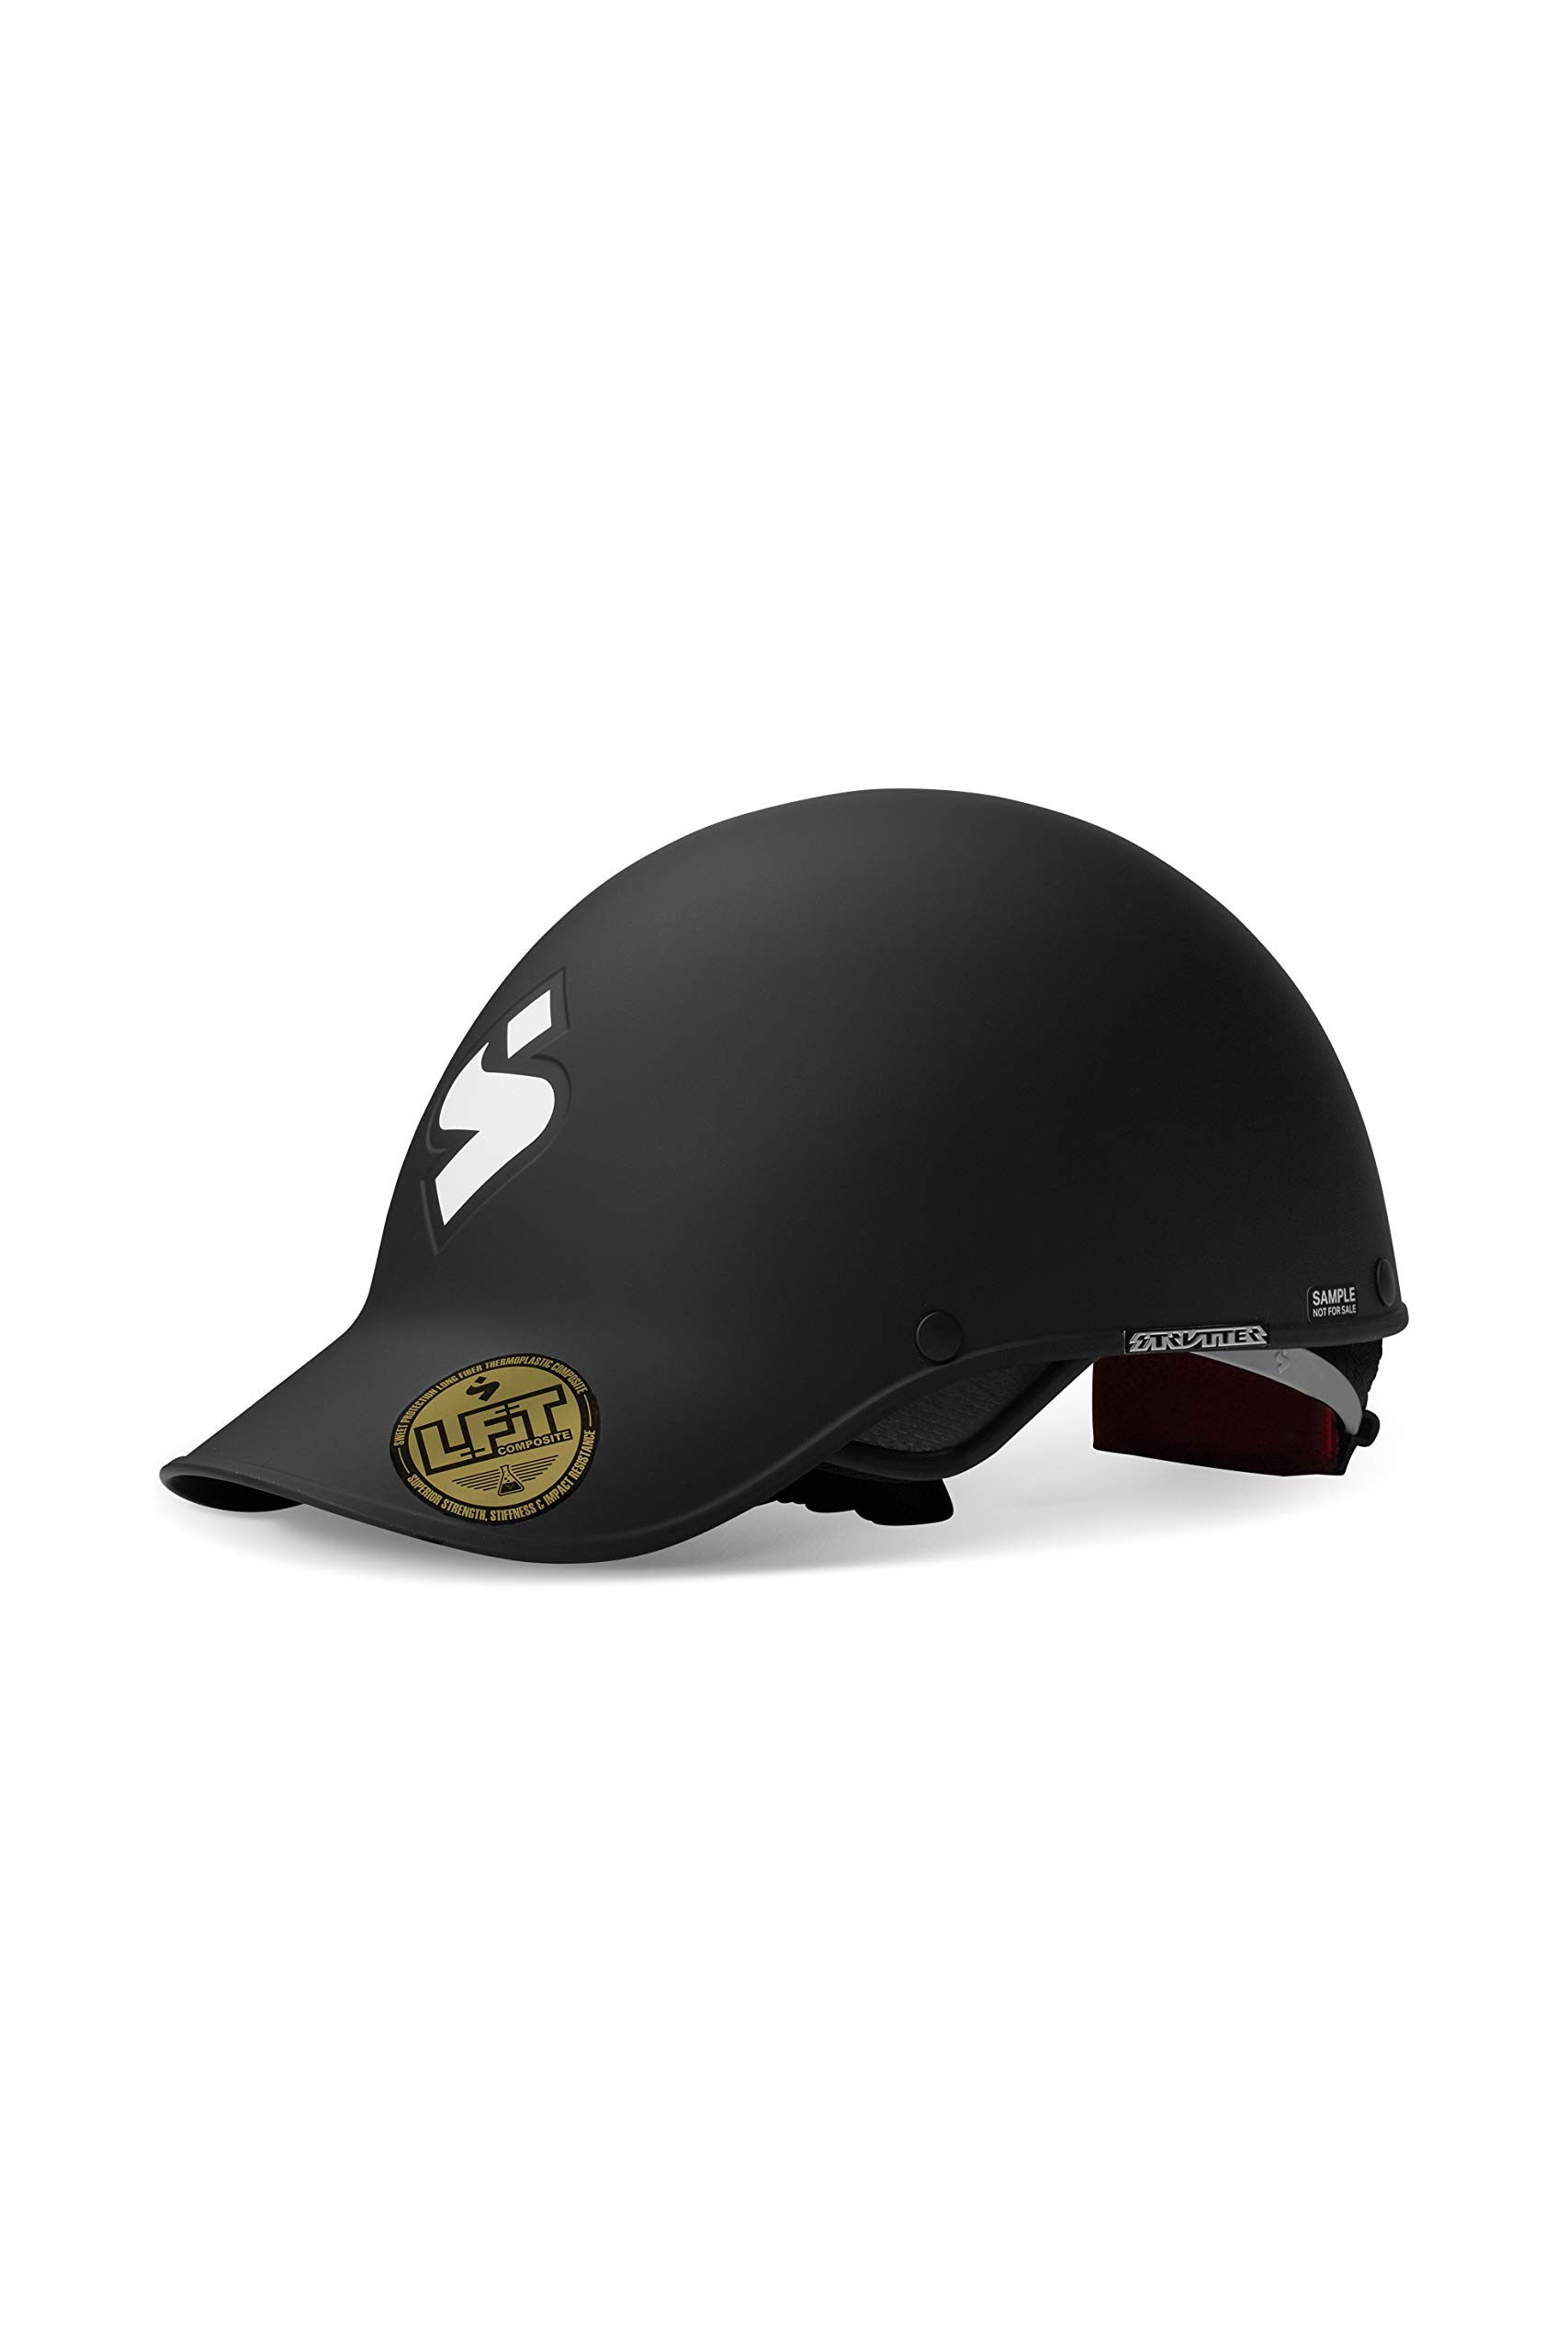 Sweet Protection Strutter Paddle Helmet, Dirt Black, ML by Sweet Protection